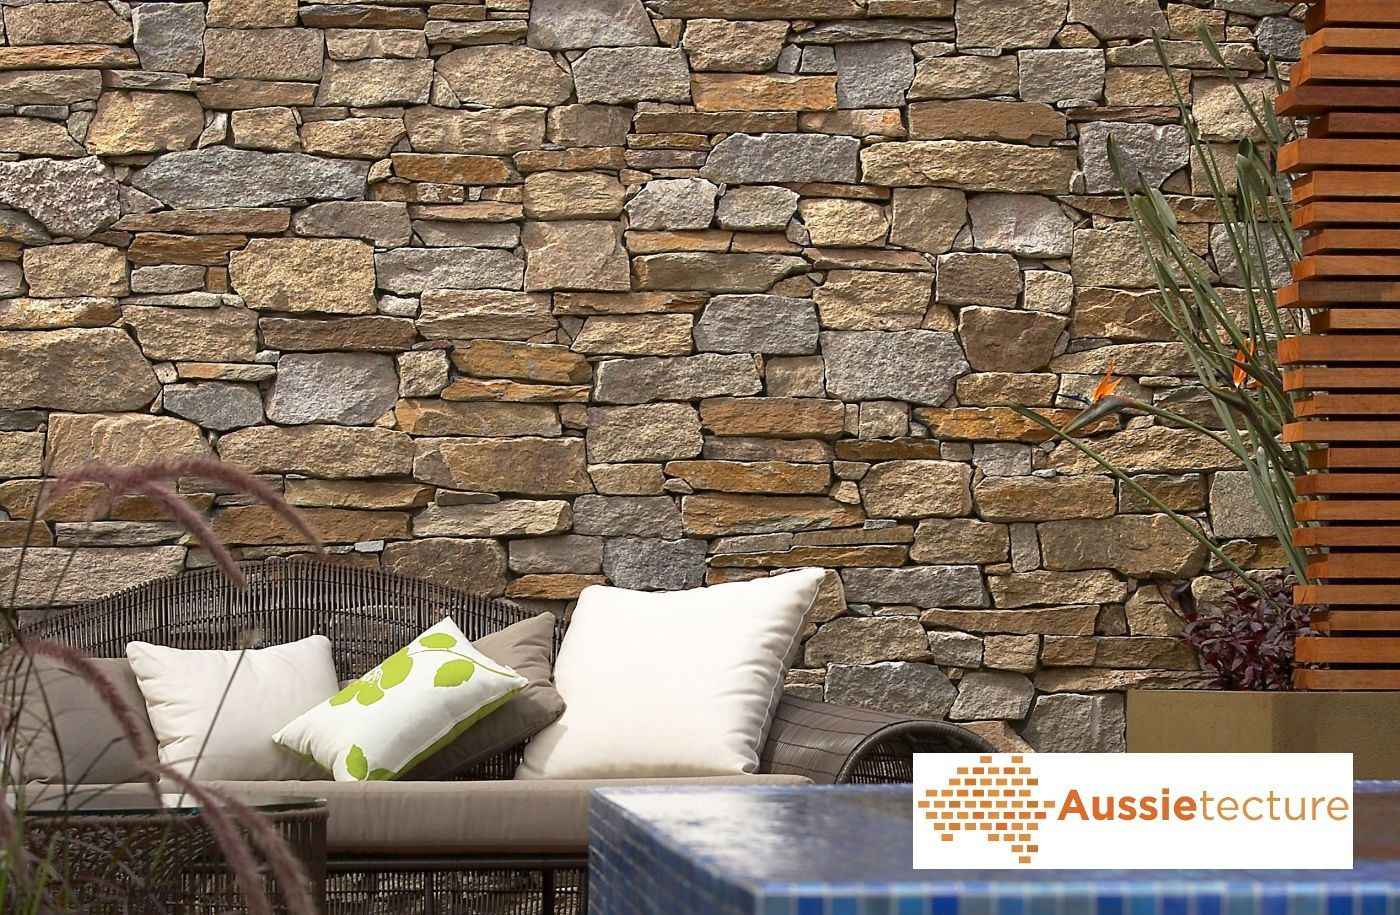 All Of Our Walling Stone Is Made From Natural Stone From Sandstone To Limestone To Granite To Basalt Natural Stone Wall Stone Veneer Wall Stone Wall Cladding